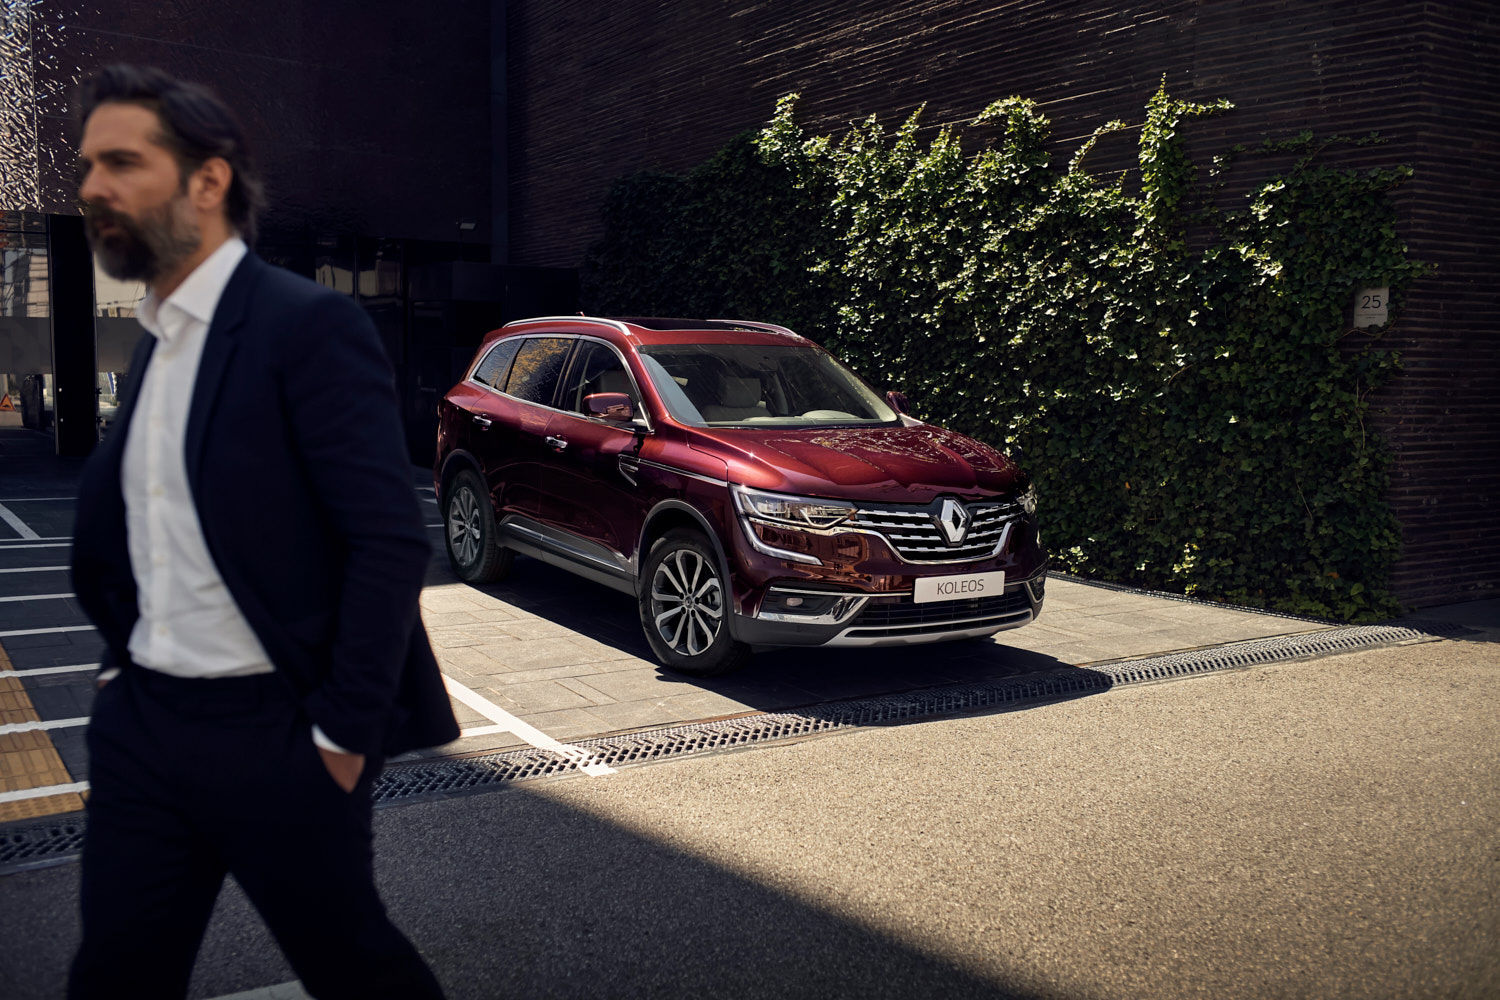 Andreas Hempel for Renault Koleos